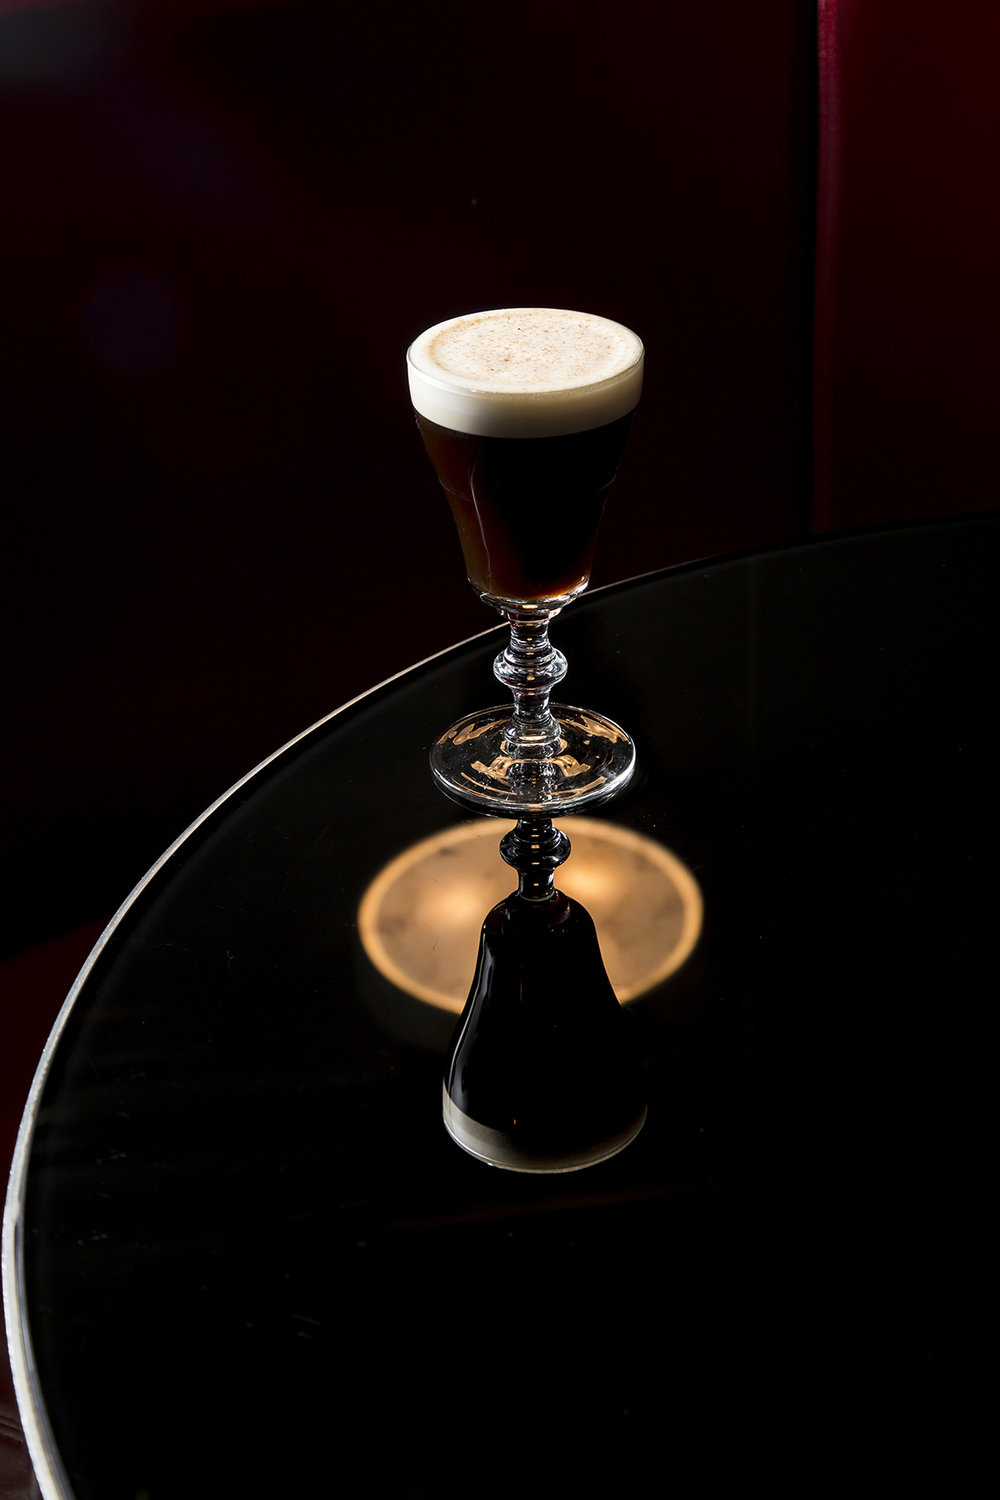 Swift_IrishCoffee_006_RG.jpg